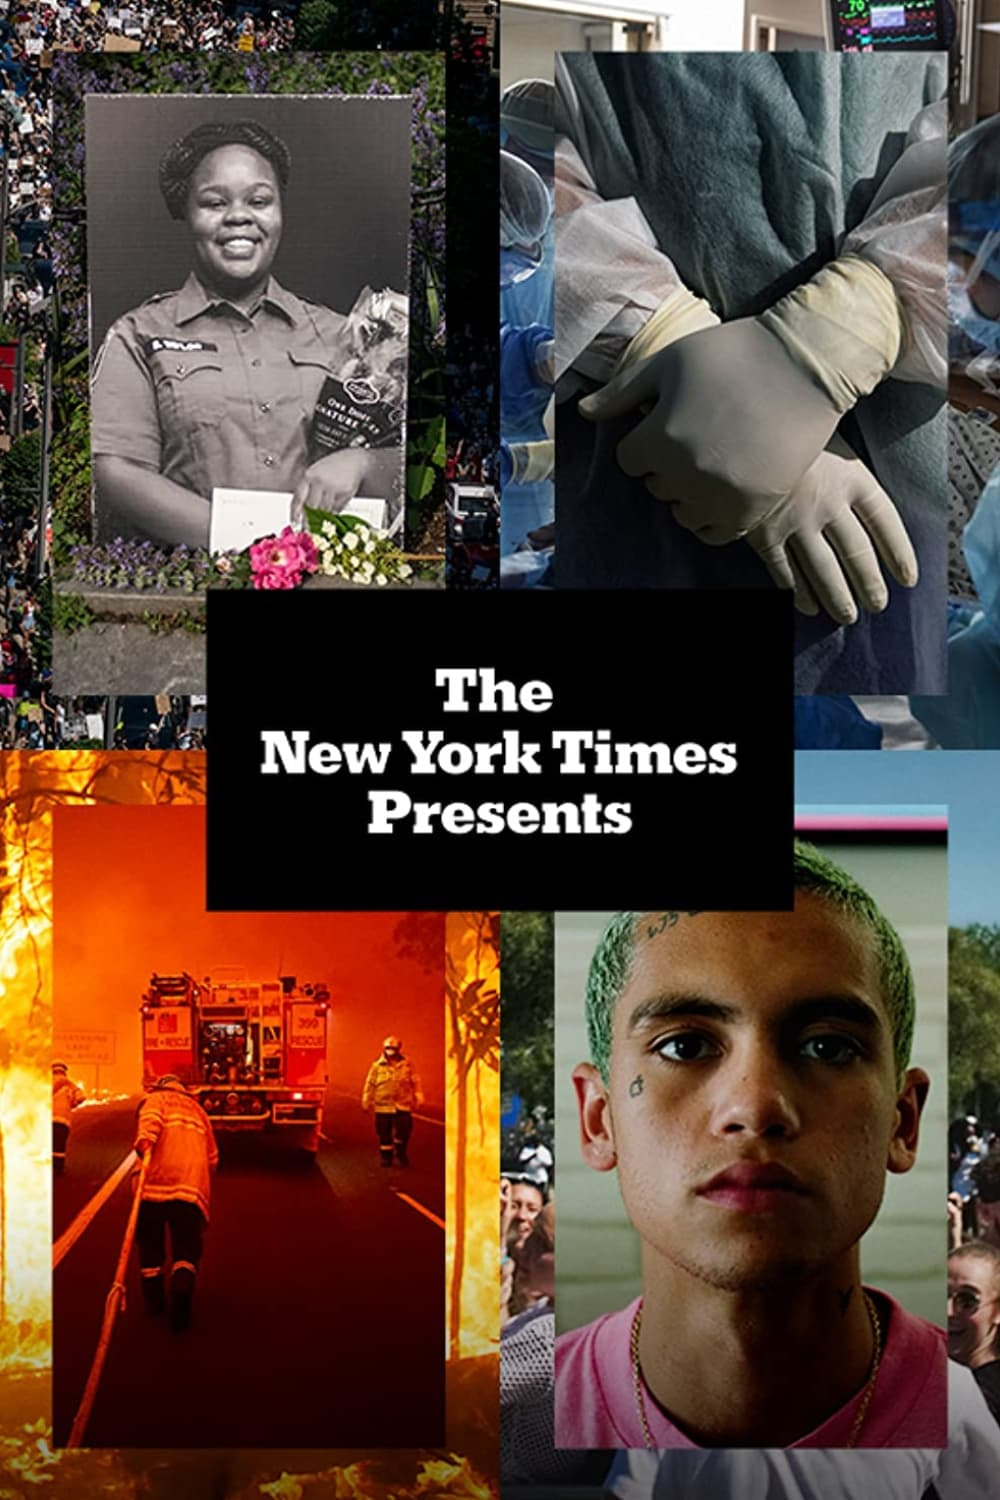 The New York Times Presents